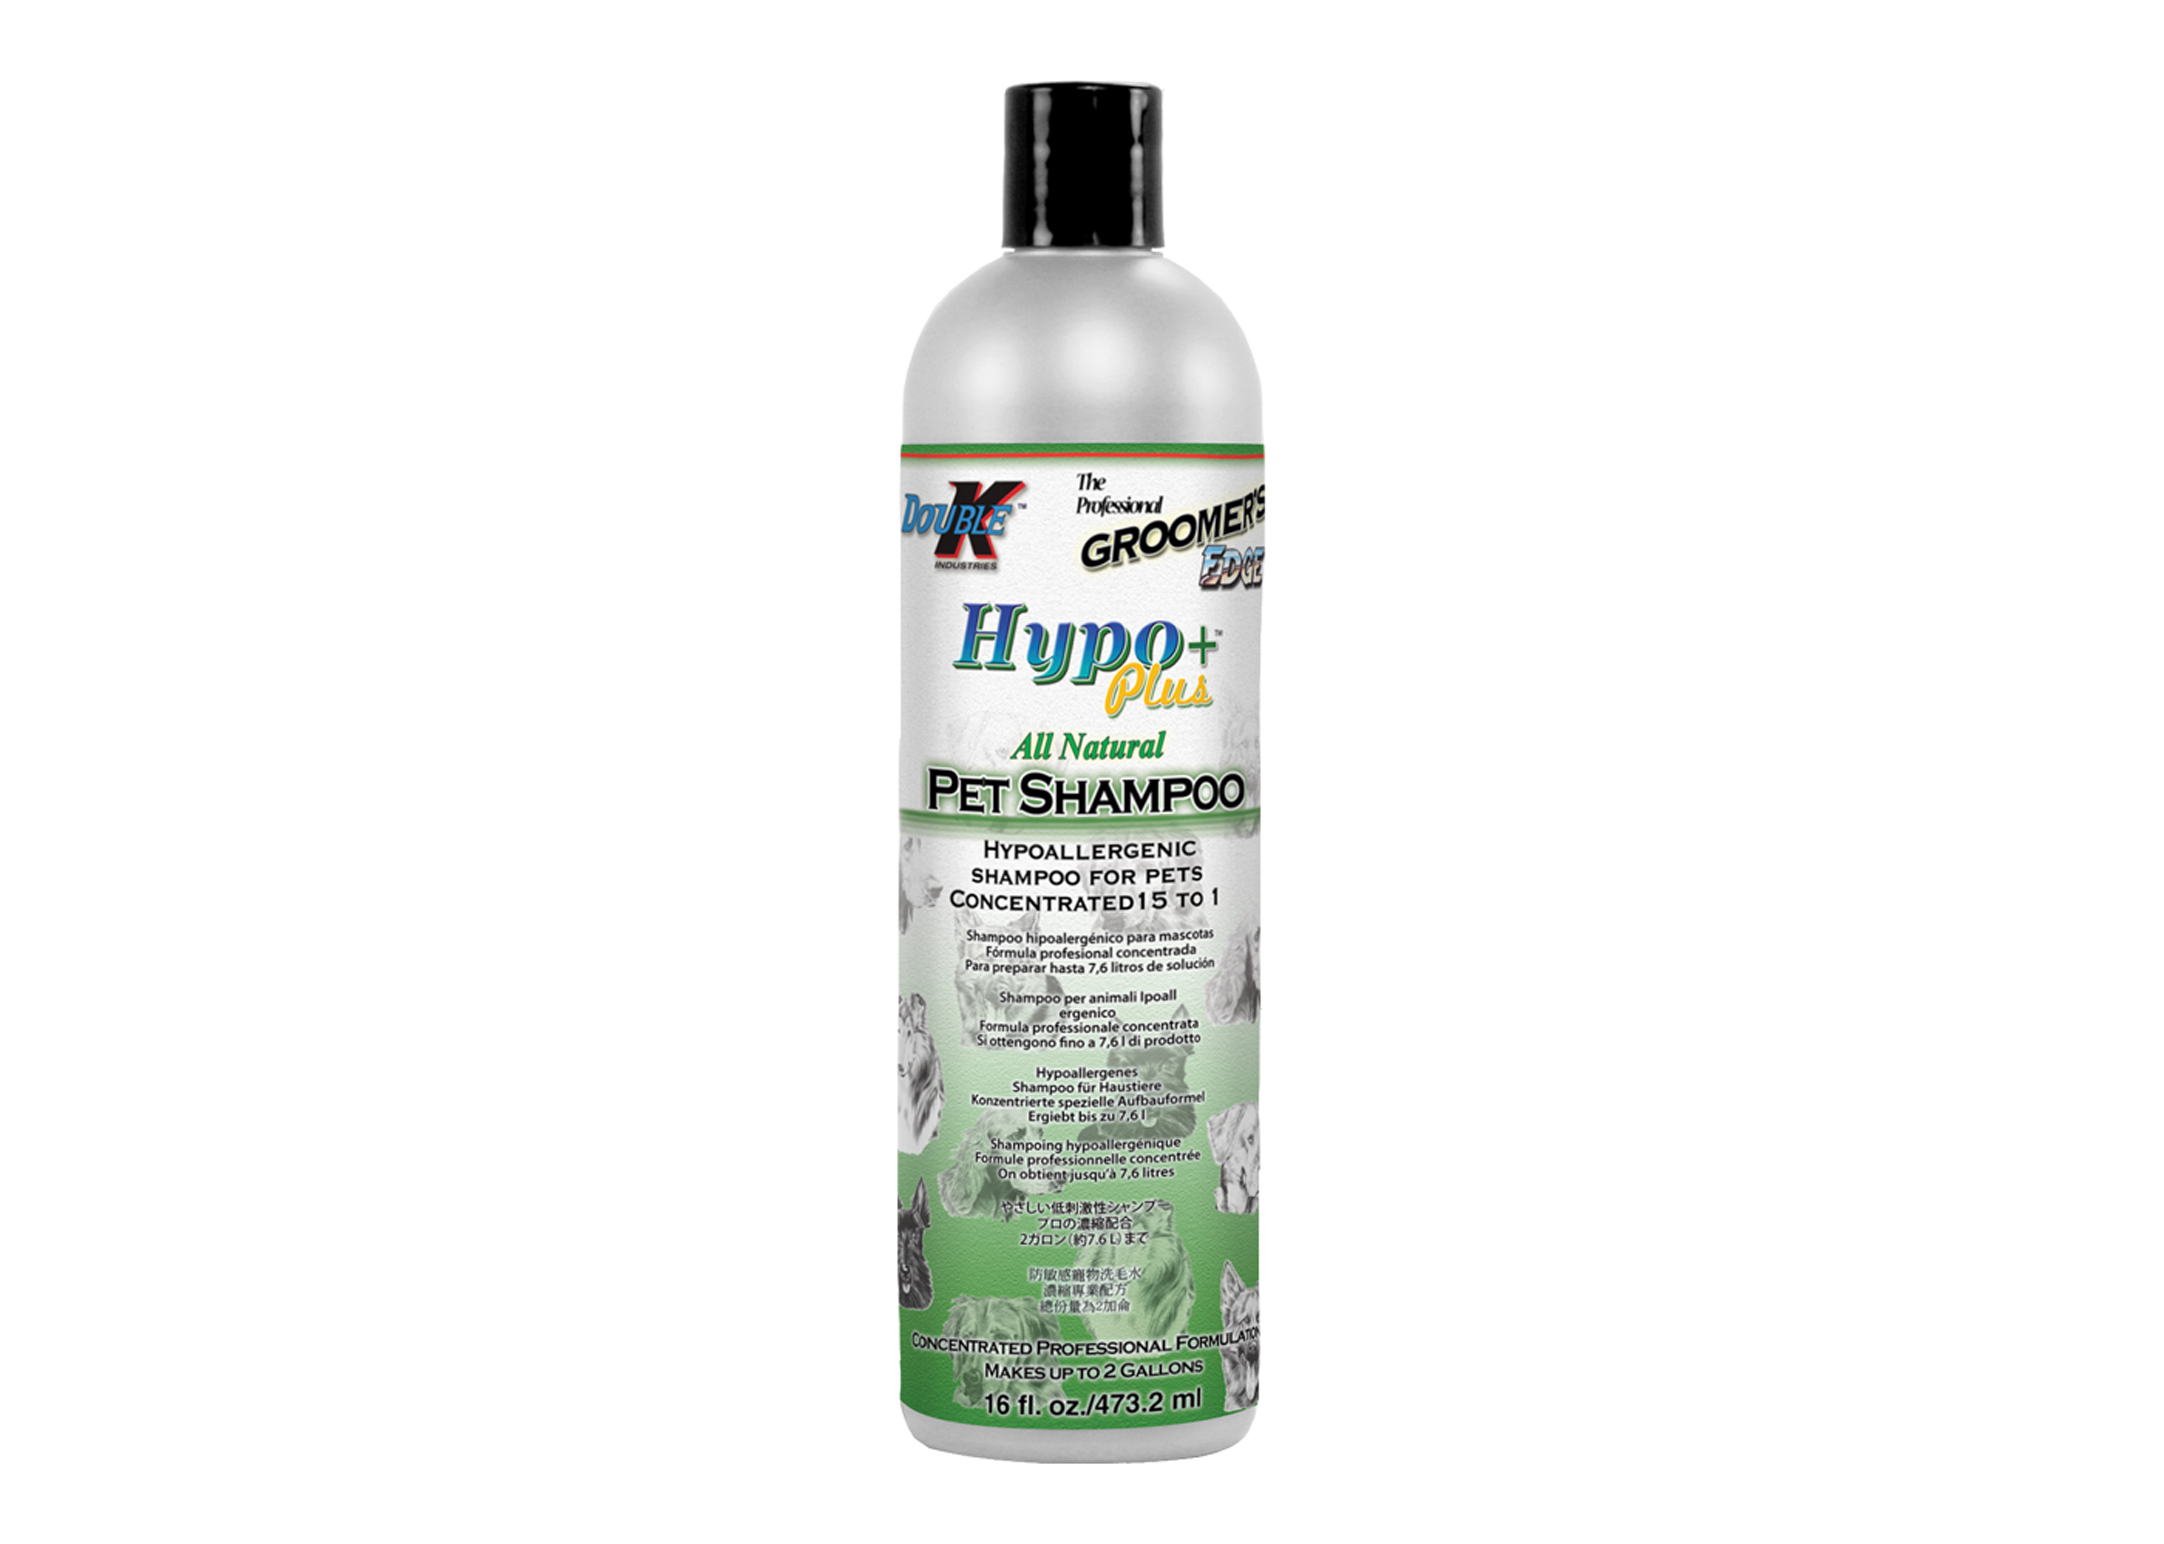 Double K Hypo+ PLUS Shampoo For Dogs, Cats And Horses